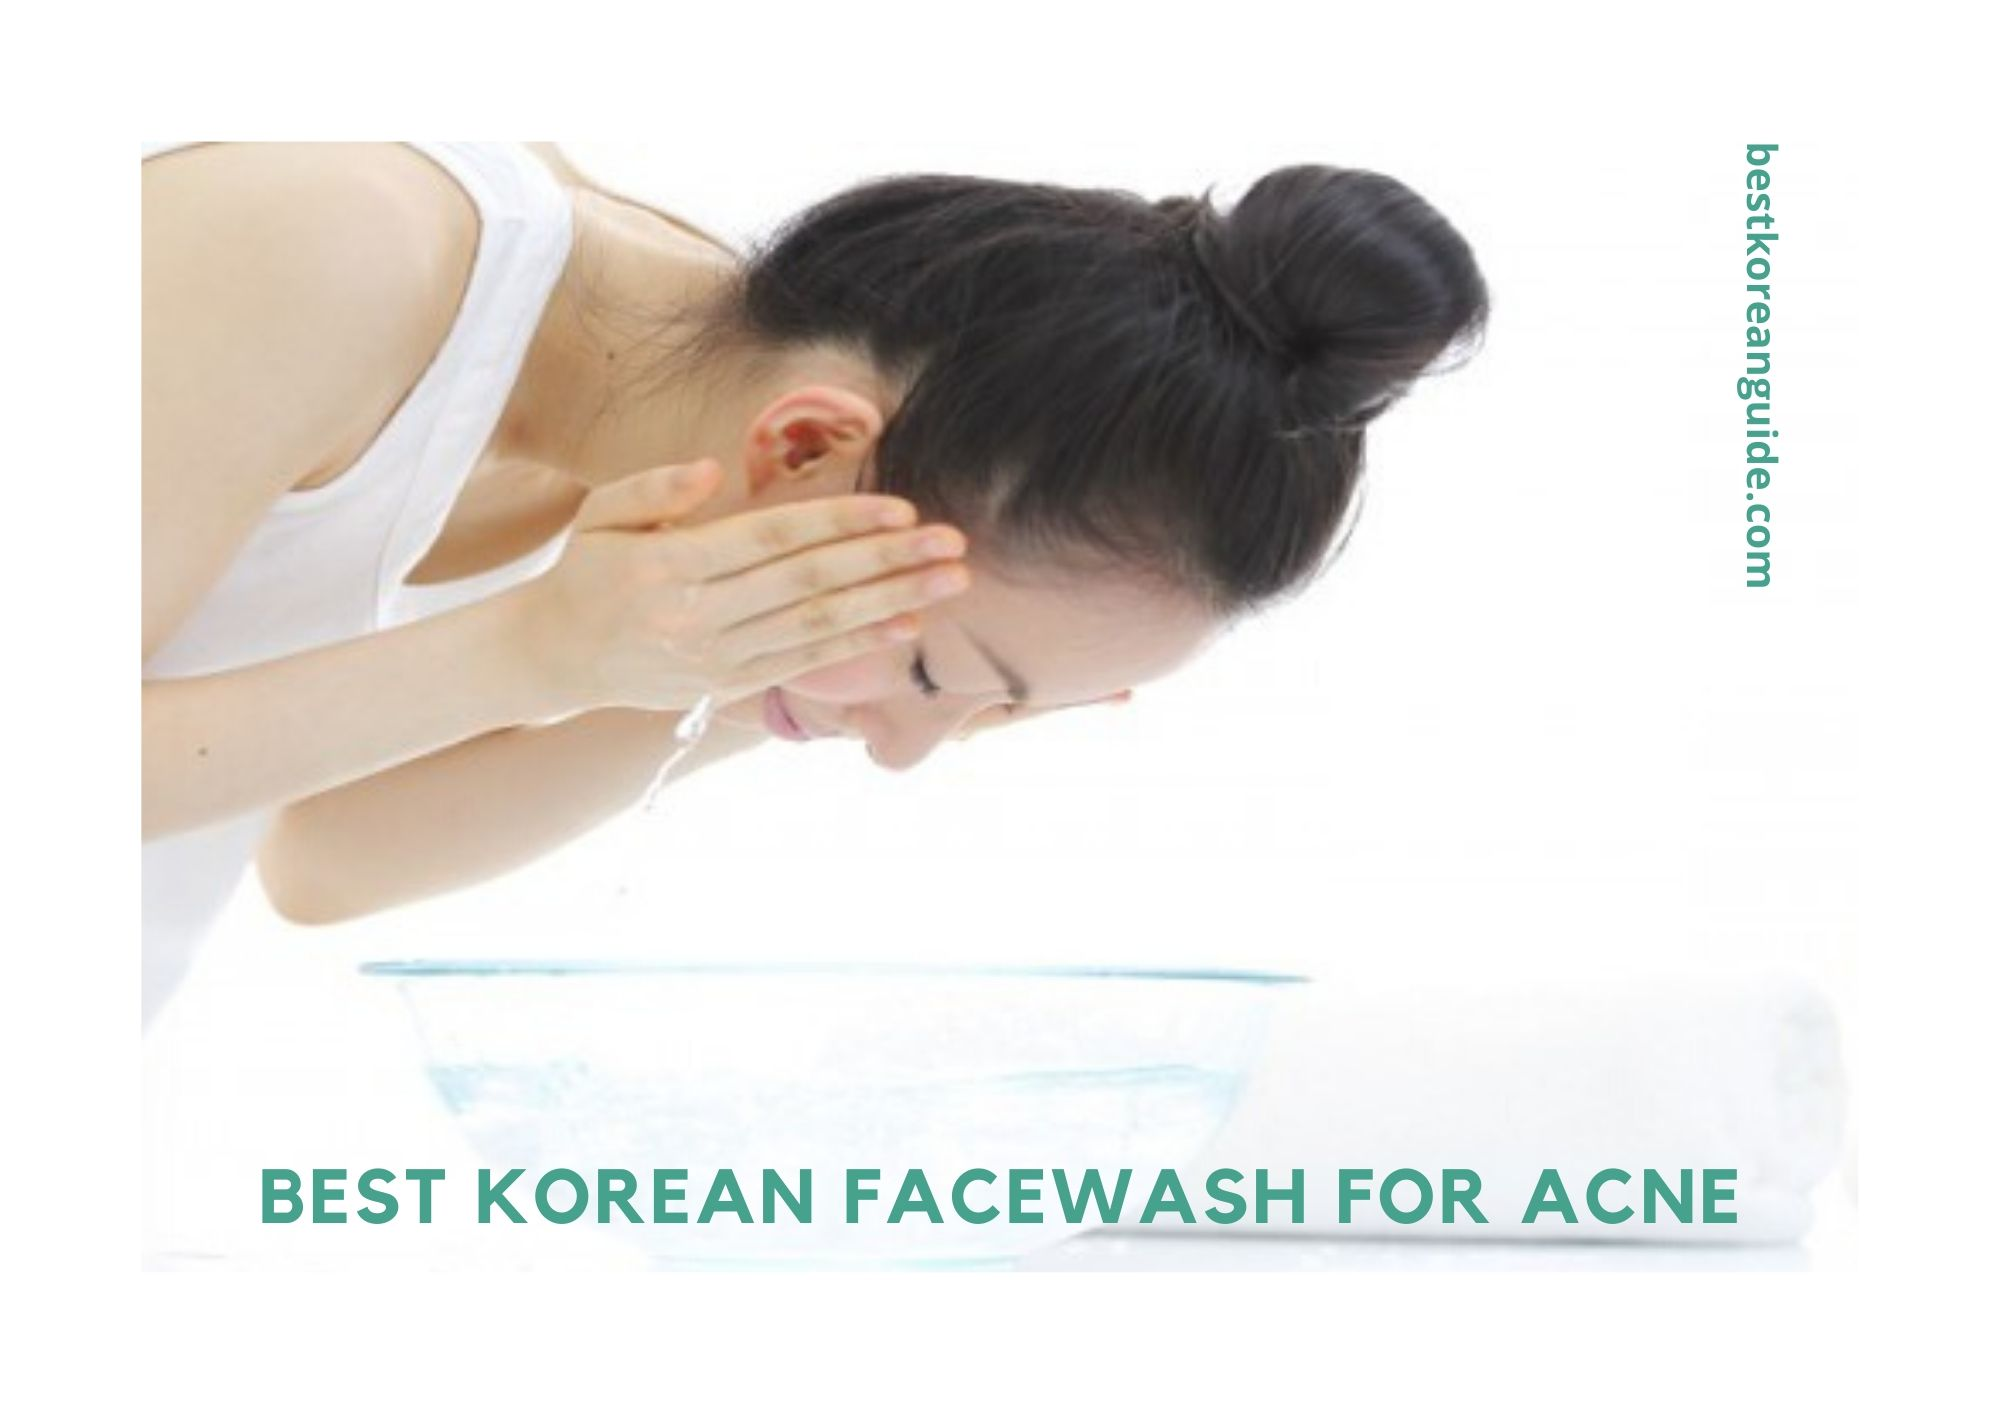 Best Korean facewash for acne